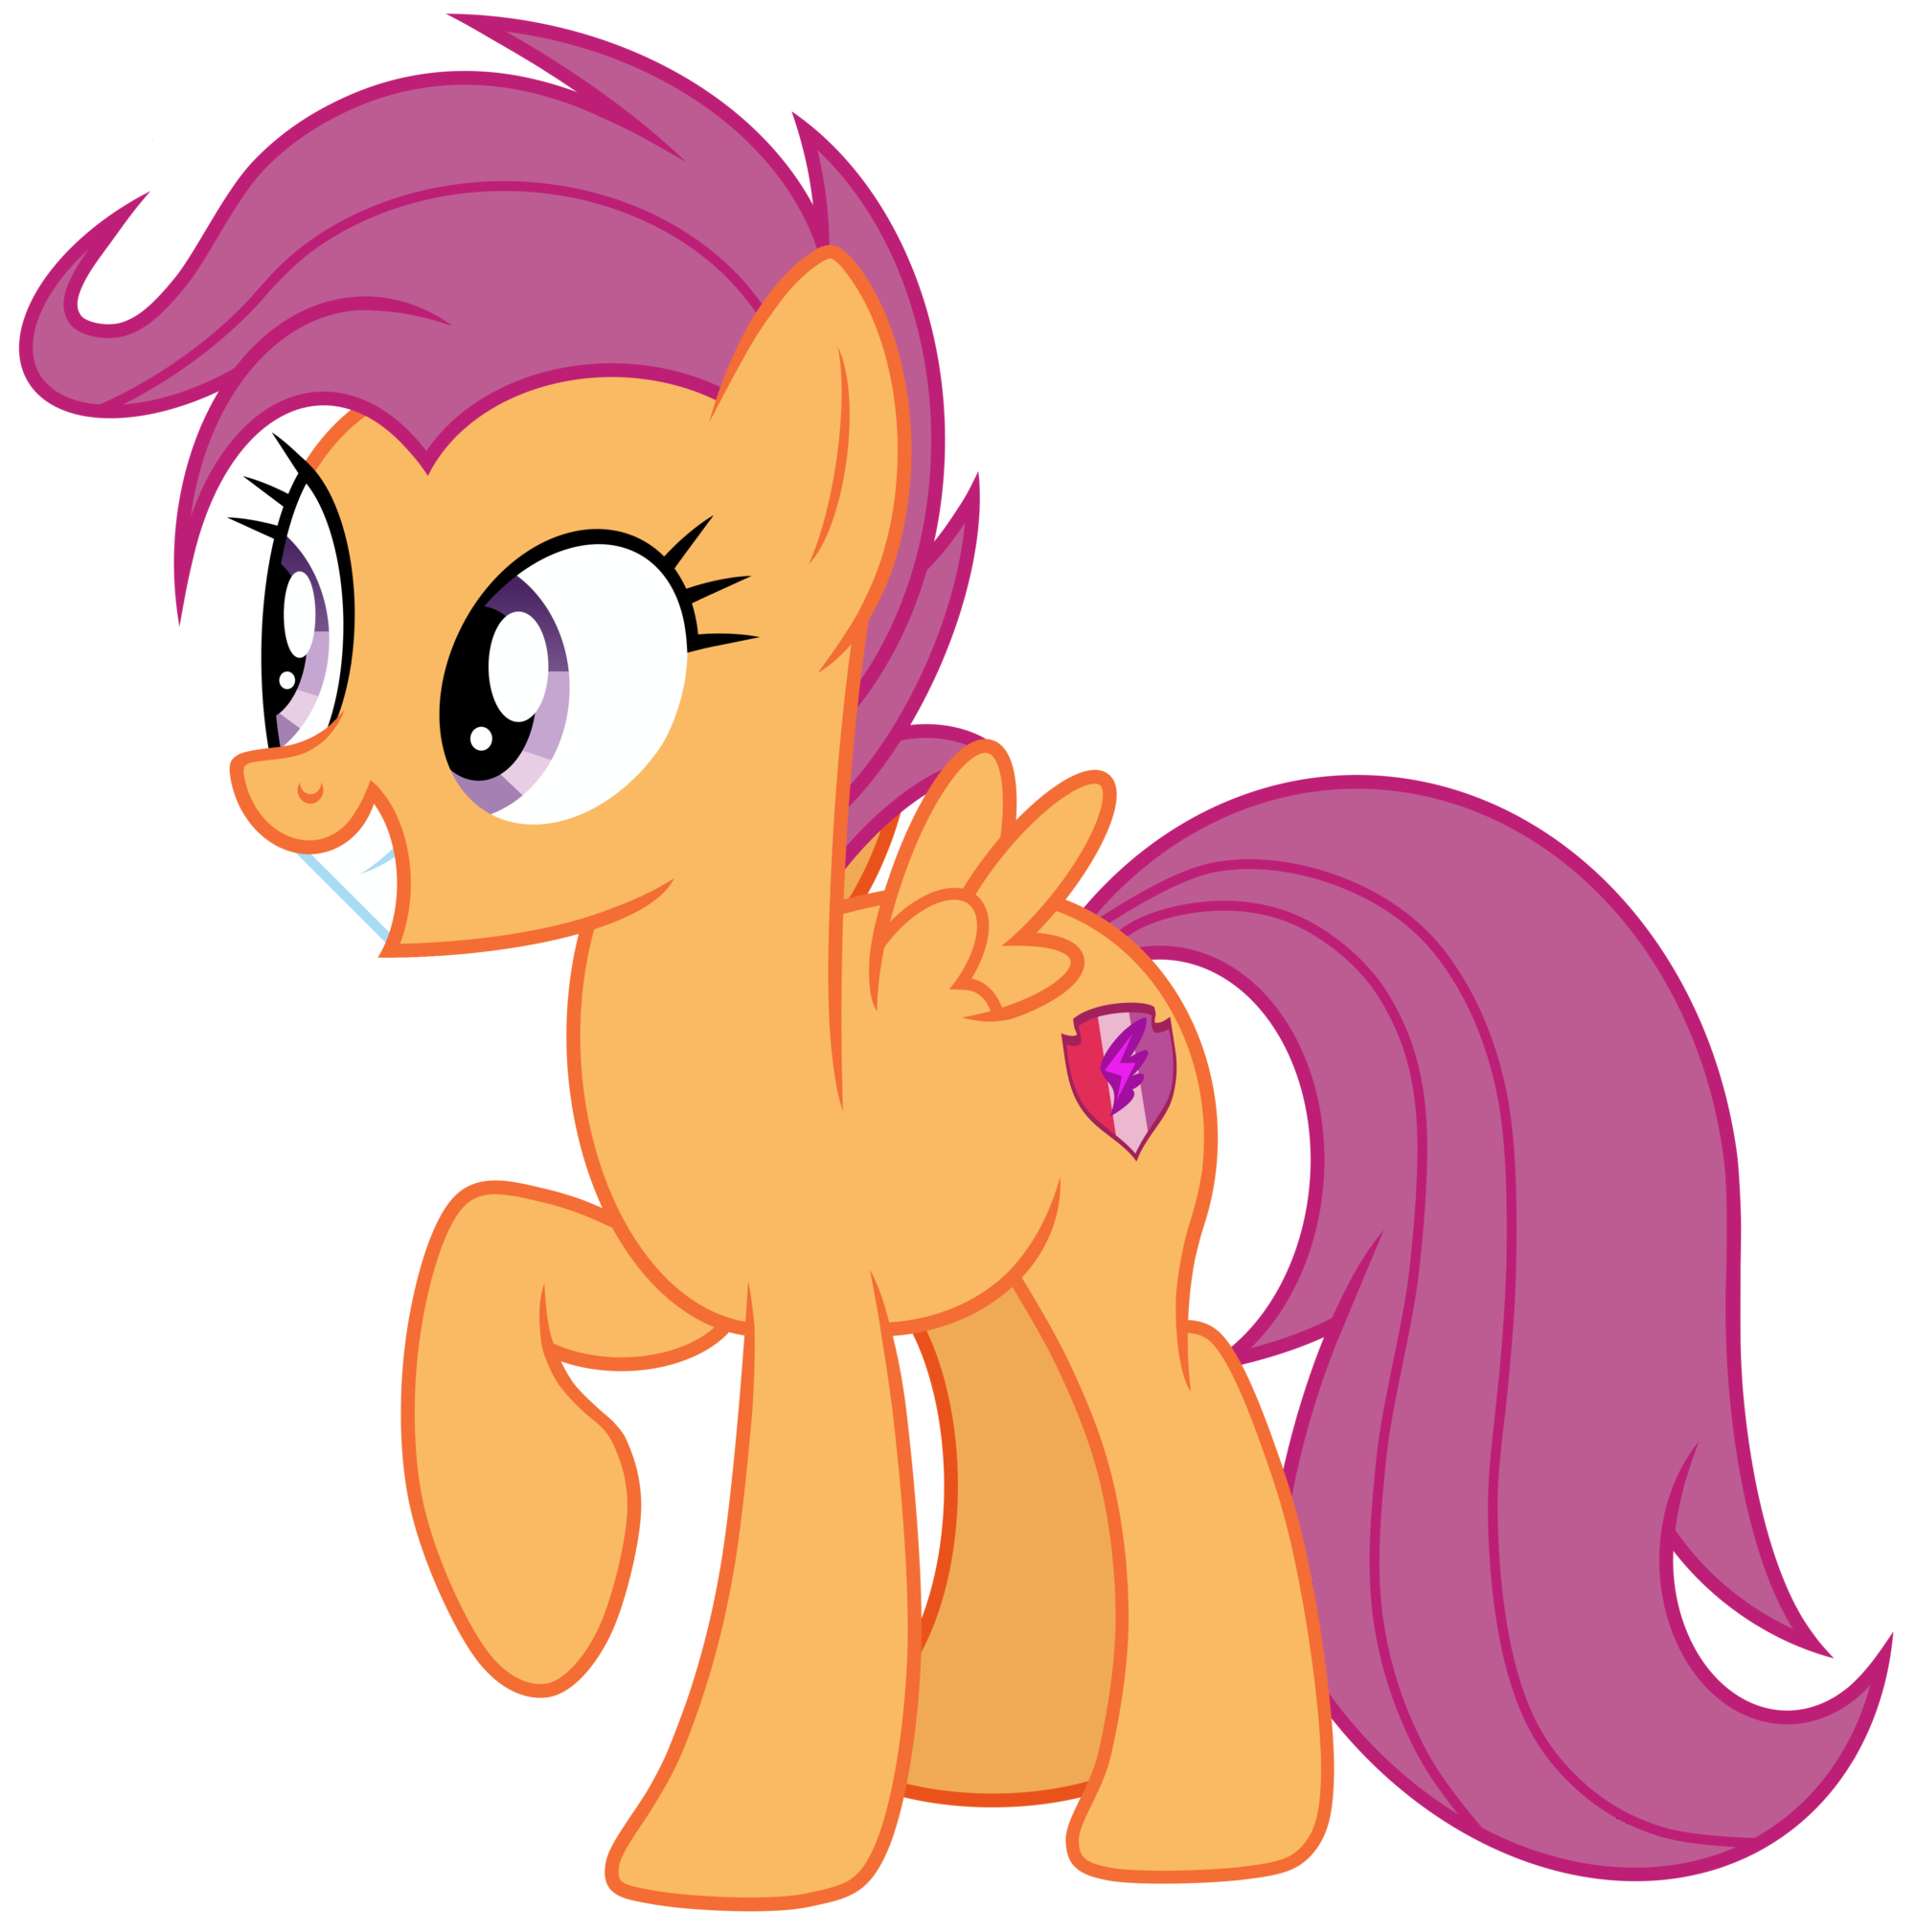 Pin On Serien Und Filme The best gifs for scootaloo ask blog. pin on serien und filme